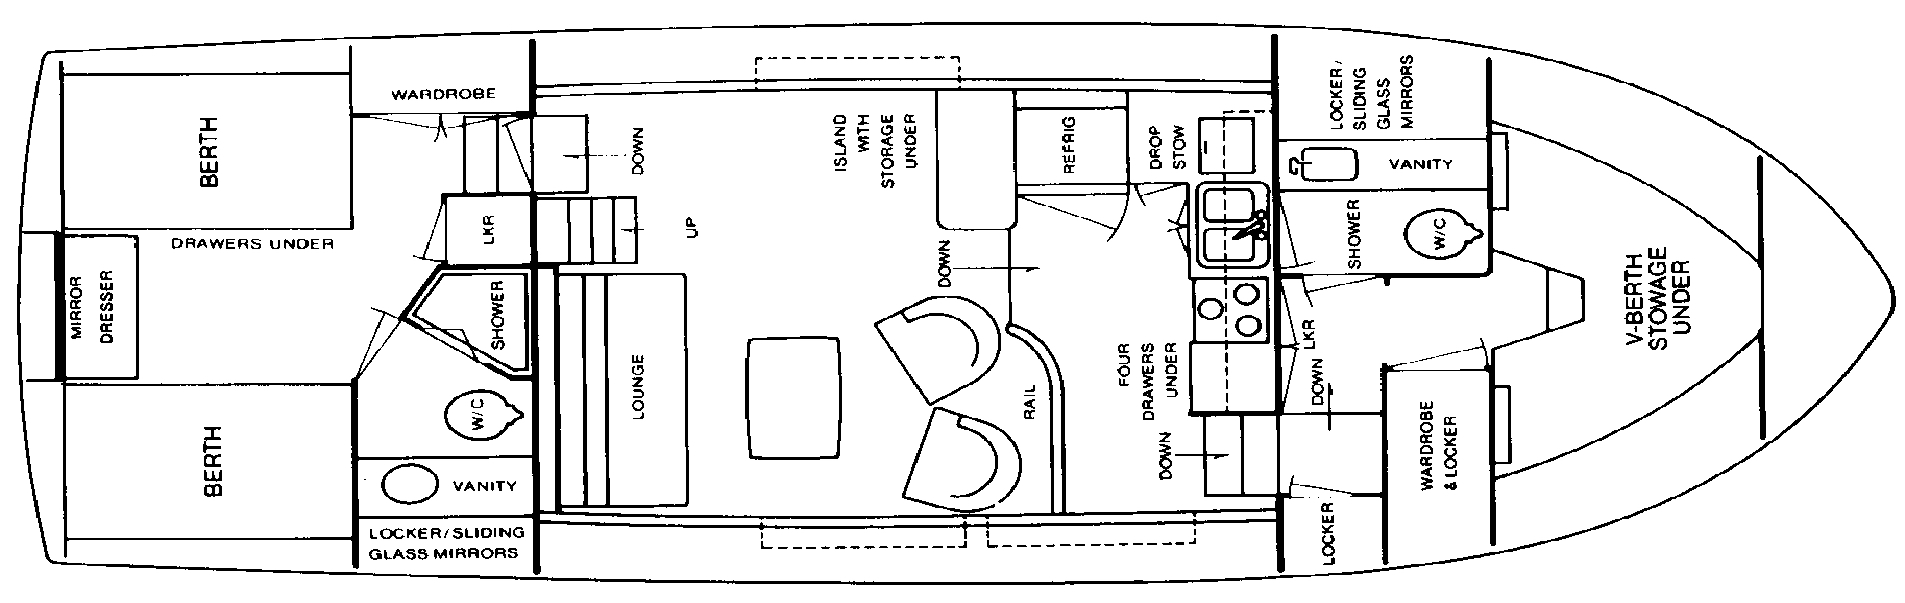 42 Motor Yacht Floor Plan 2